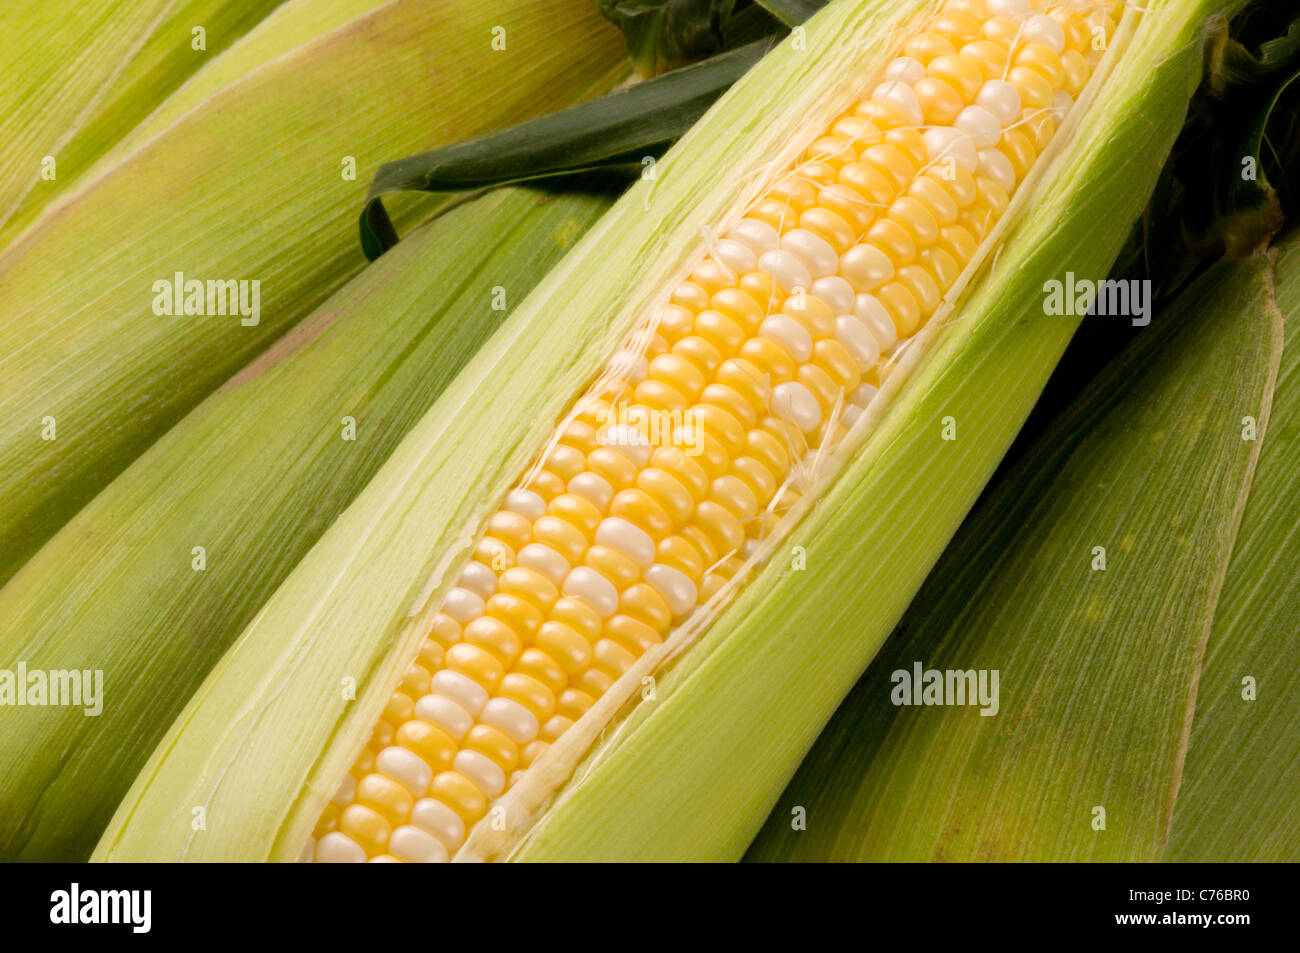 Husked ear of corn - Stock Image